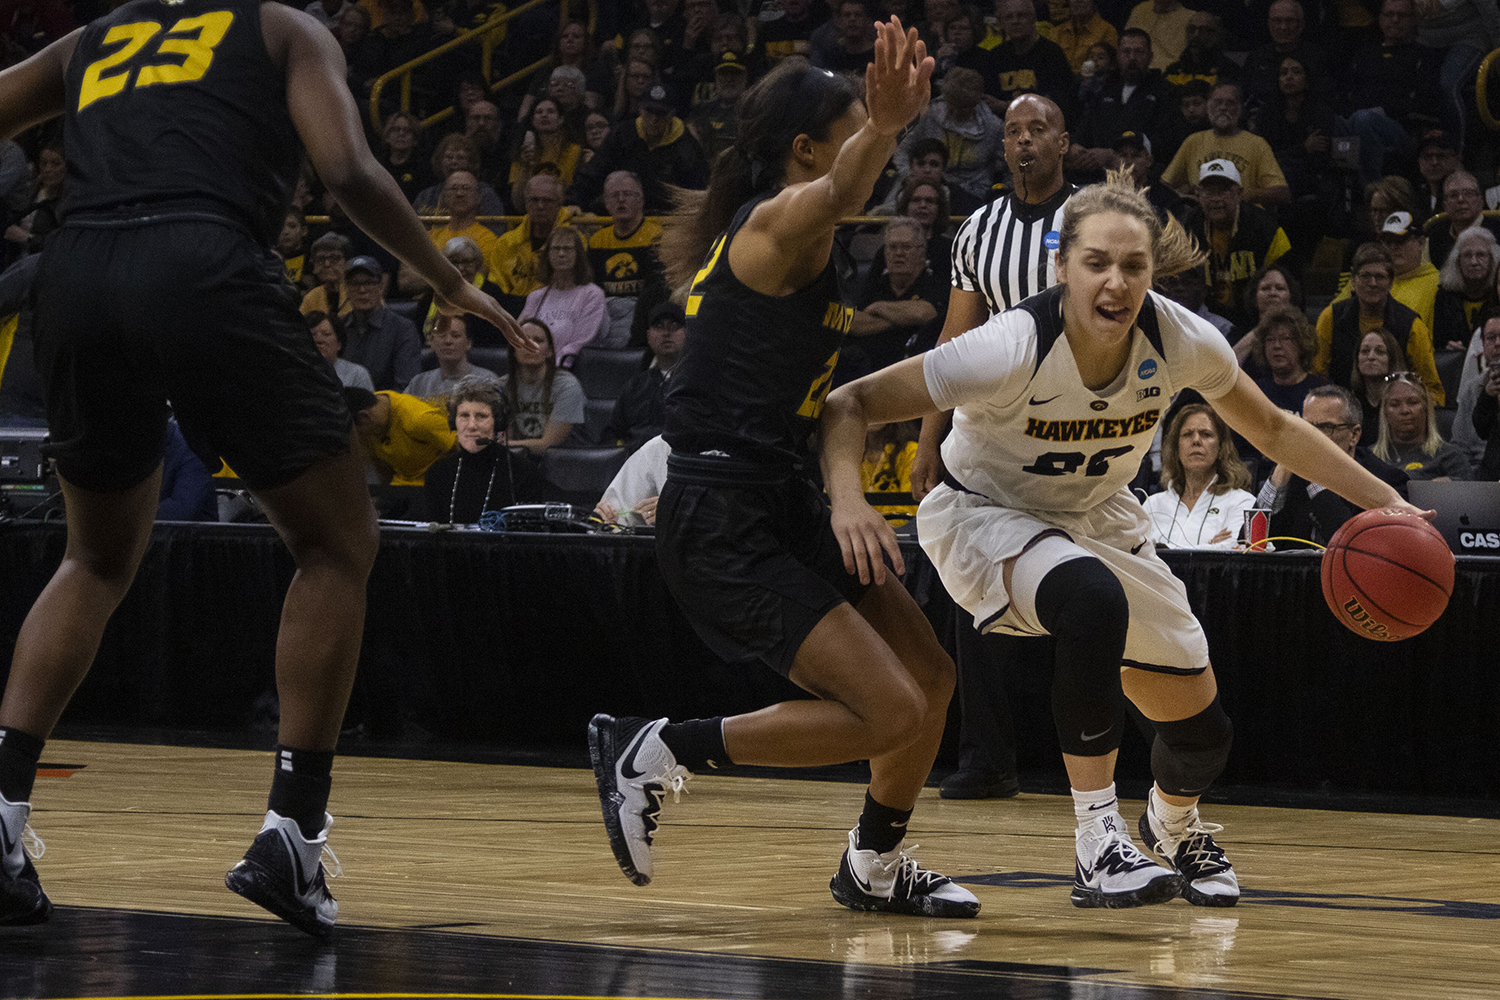 Iowa+guard+Kathleen+Doyle+drives+to+the+basket+during+the+Iowa%2FMizzou+NCAA+Tournament+second+round+women%27s+basketball+game+in+Carver-Hawkeye+Arena++on+Sunday%2C+March+24%2C+2019.+The+Hawkeyes+defeated+the+Tigers%2C+68-52.+